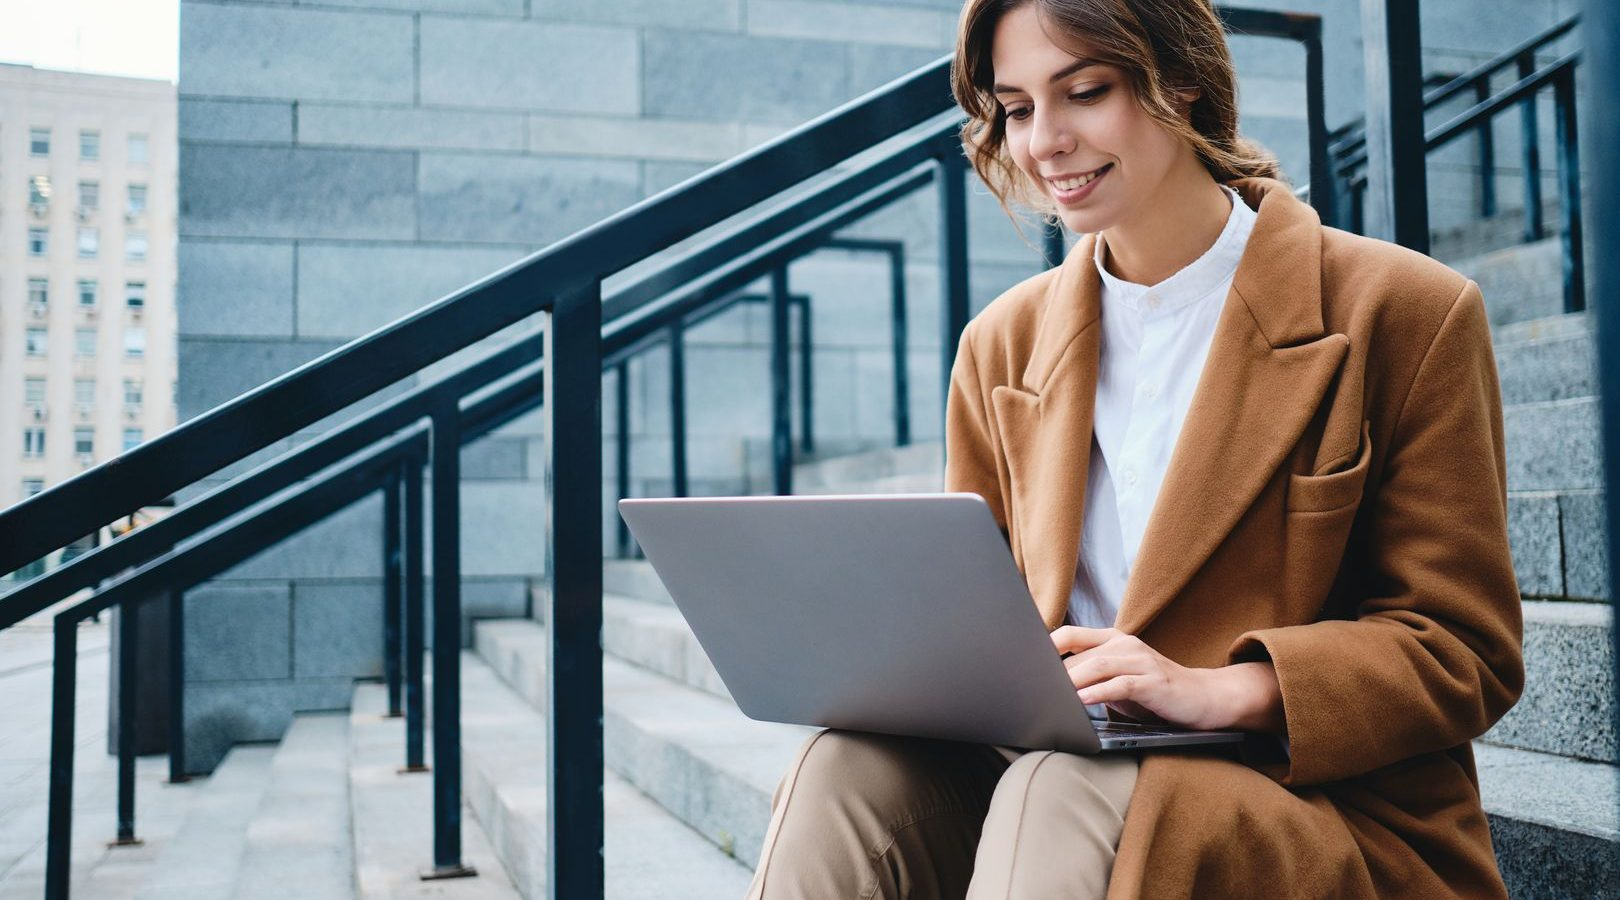 Young attractive smiling businesswoman in coat happily working with laptop on stairs on street